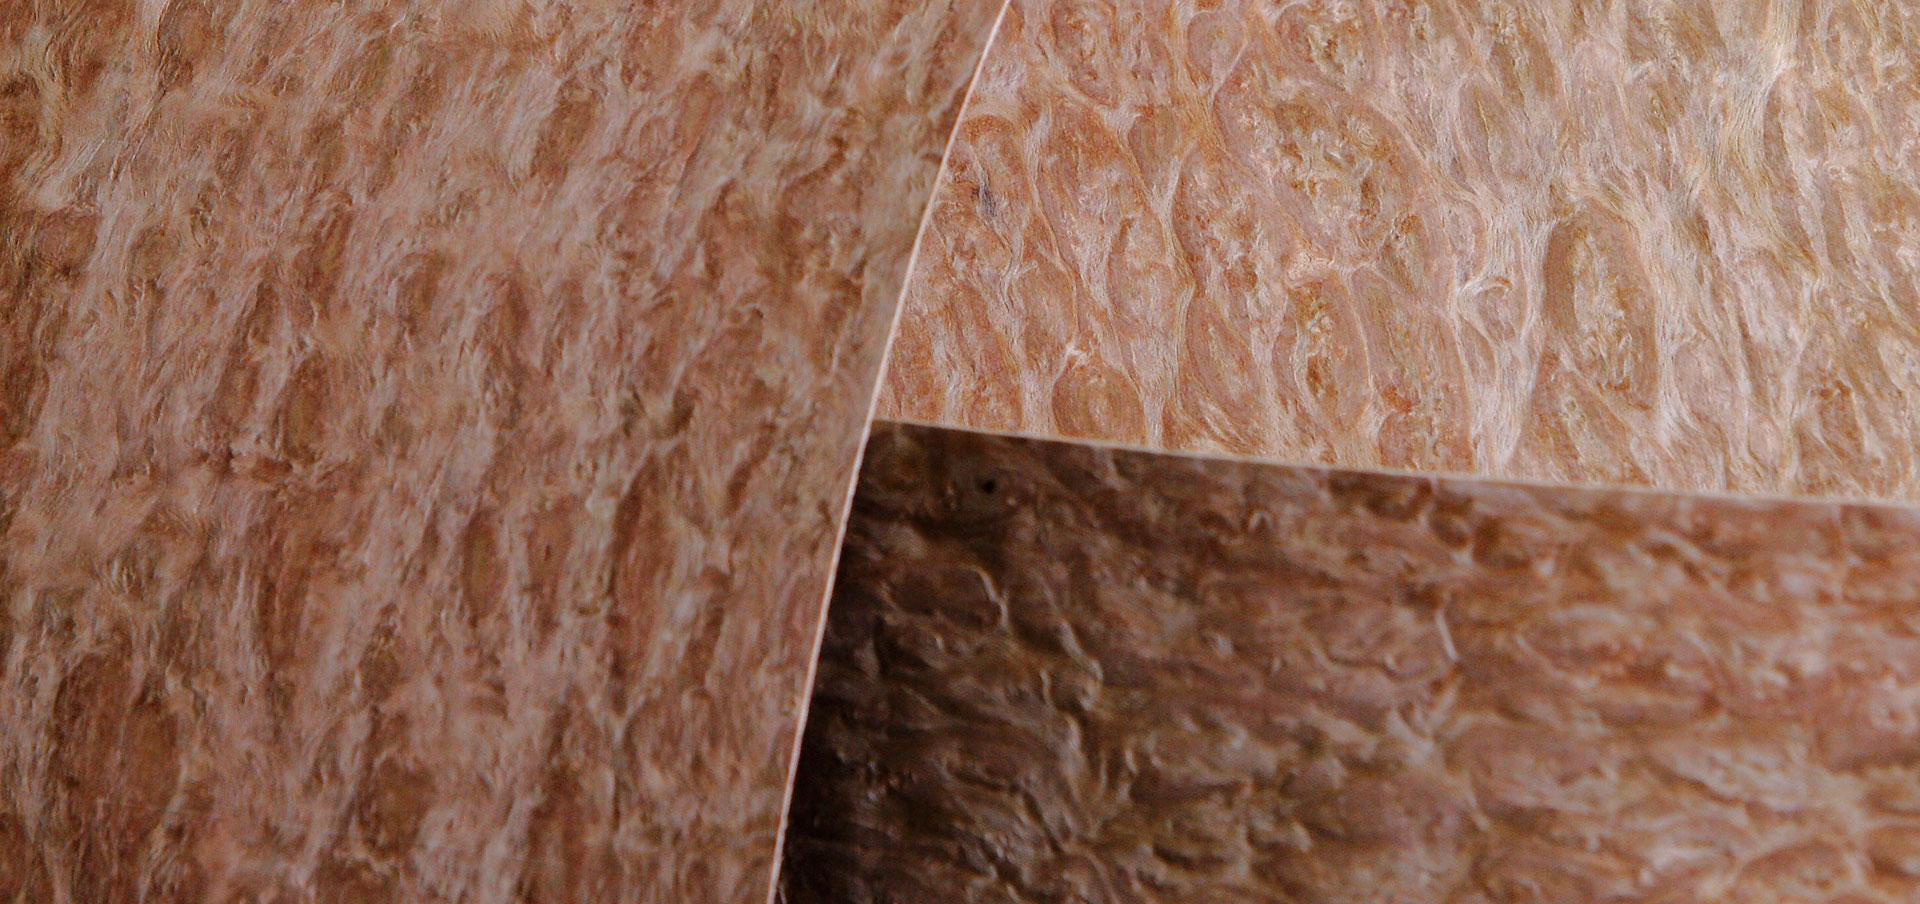 What Is Wood Veneer Made Of Photos